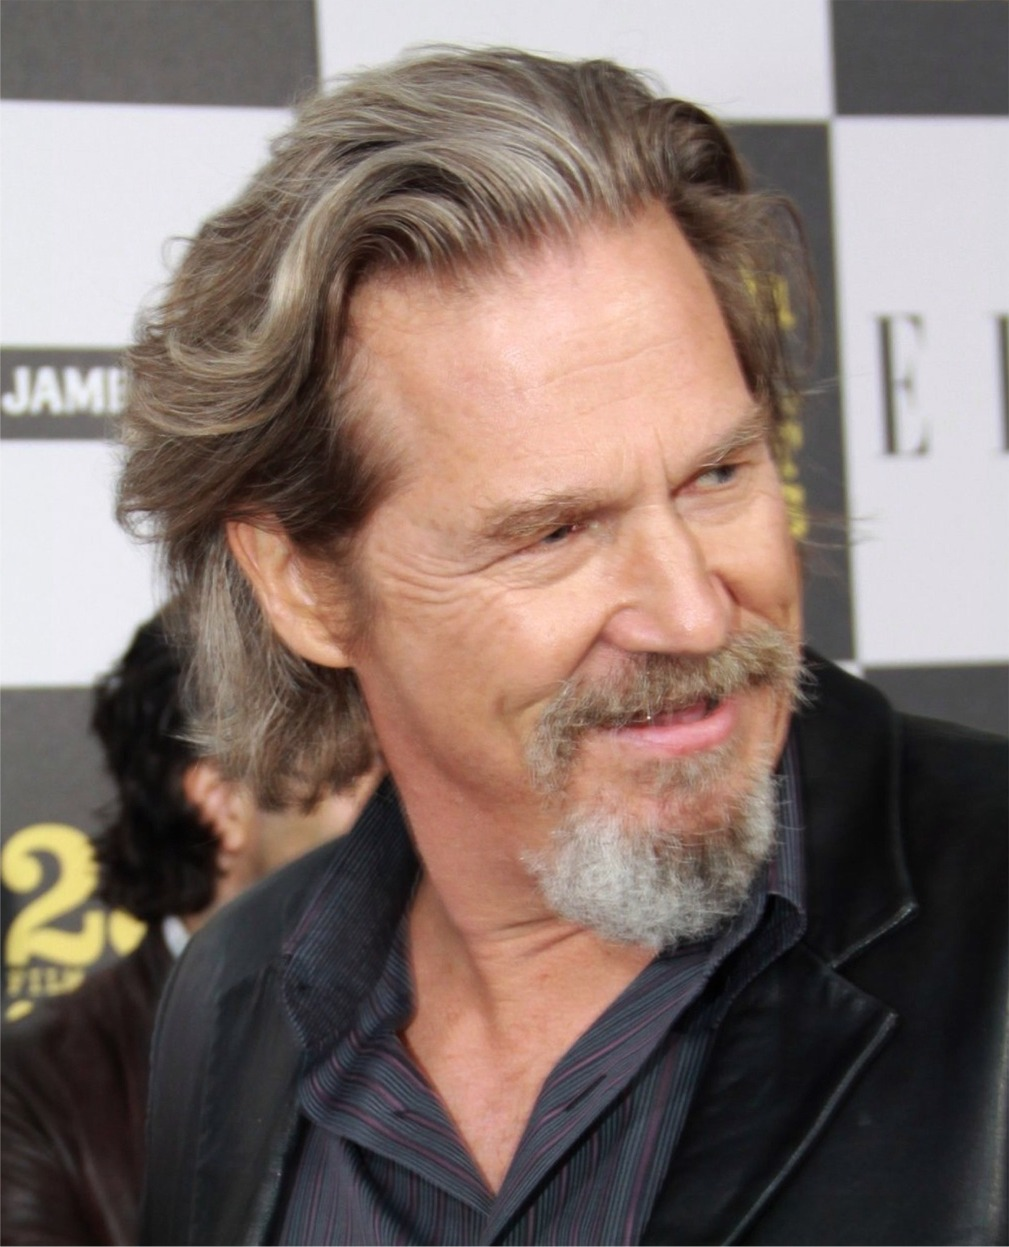 jeff bridges musicjeff bridges young, jeff bridges iron man, jeff bridges height, jeff bridges wife, jeff bridges music, jeff bridges filmi, jeff bridges movies, jeff bridges кинопоиск, jeff bridges wiki, jeff bridges imdb, jeff bridges kinopoisk, jeff bridges films, jeff bridges crossfit, jeff bridges fan, jeff bridges dance, jeff bridges series, jeff bridges song, jeff bridges club, jeff bridges interview, jeff bridges be here soon